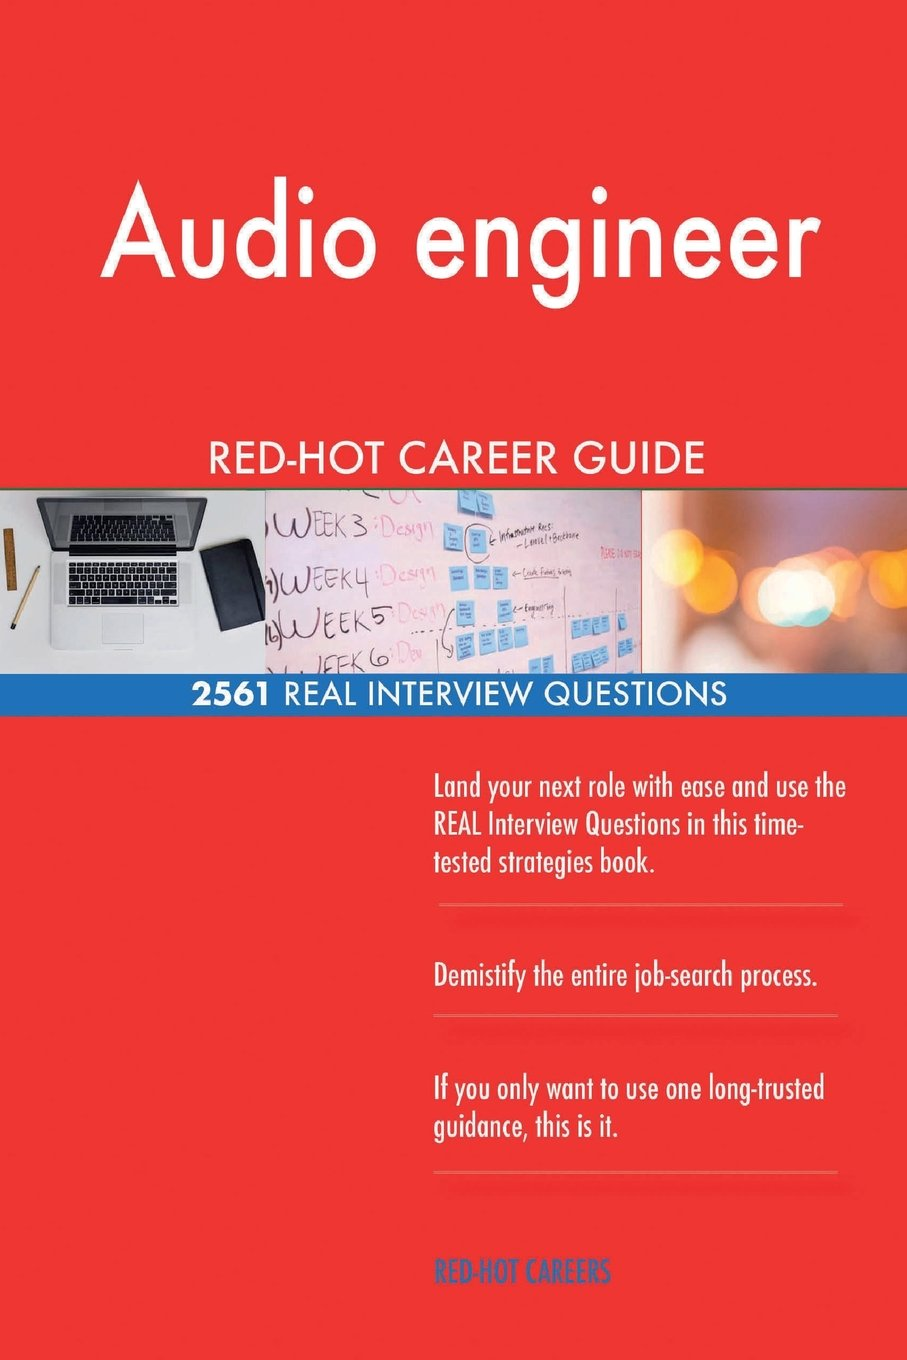 Audio engineer RED-HOT Career Guide; 2561 REAL Interview Questions